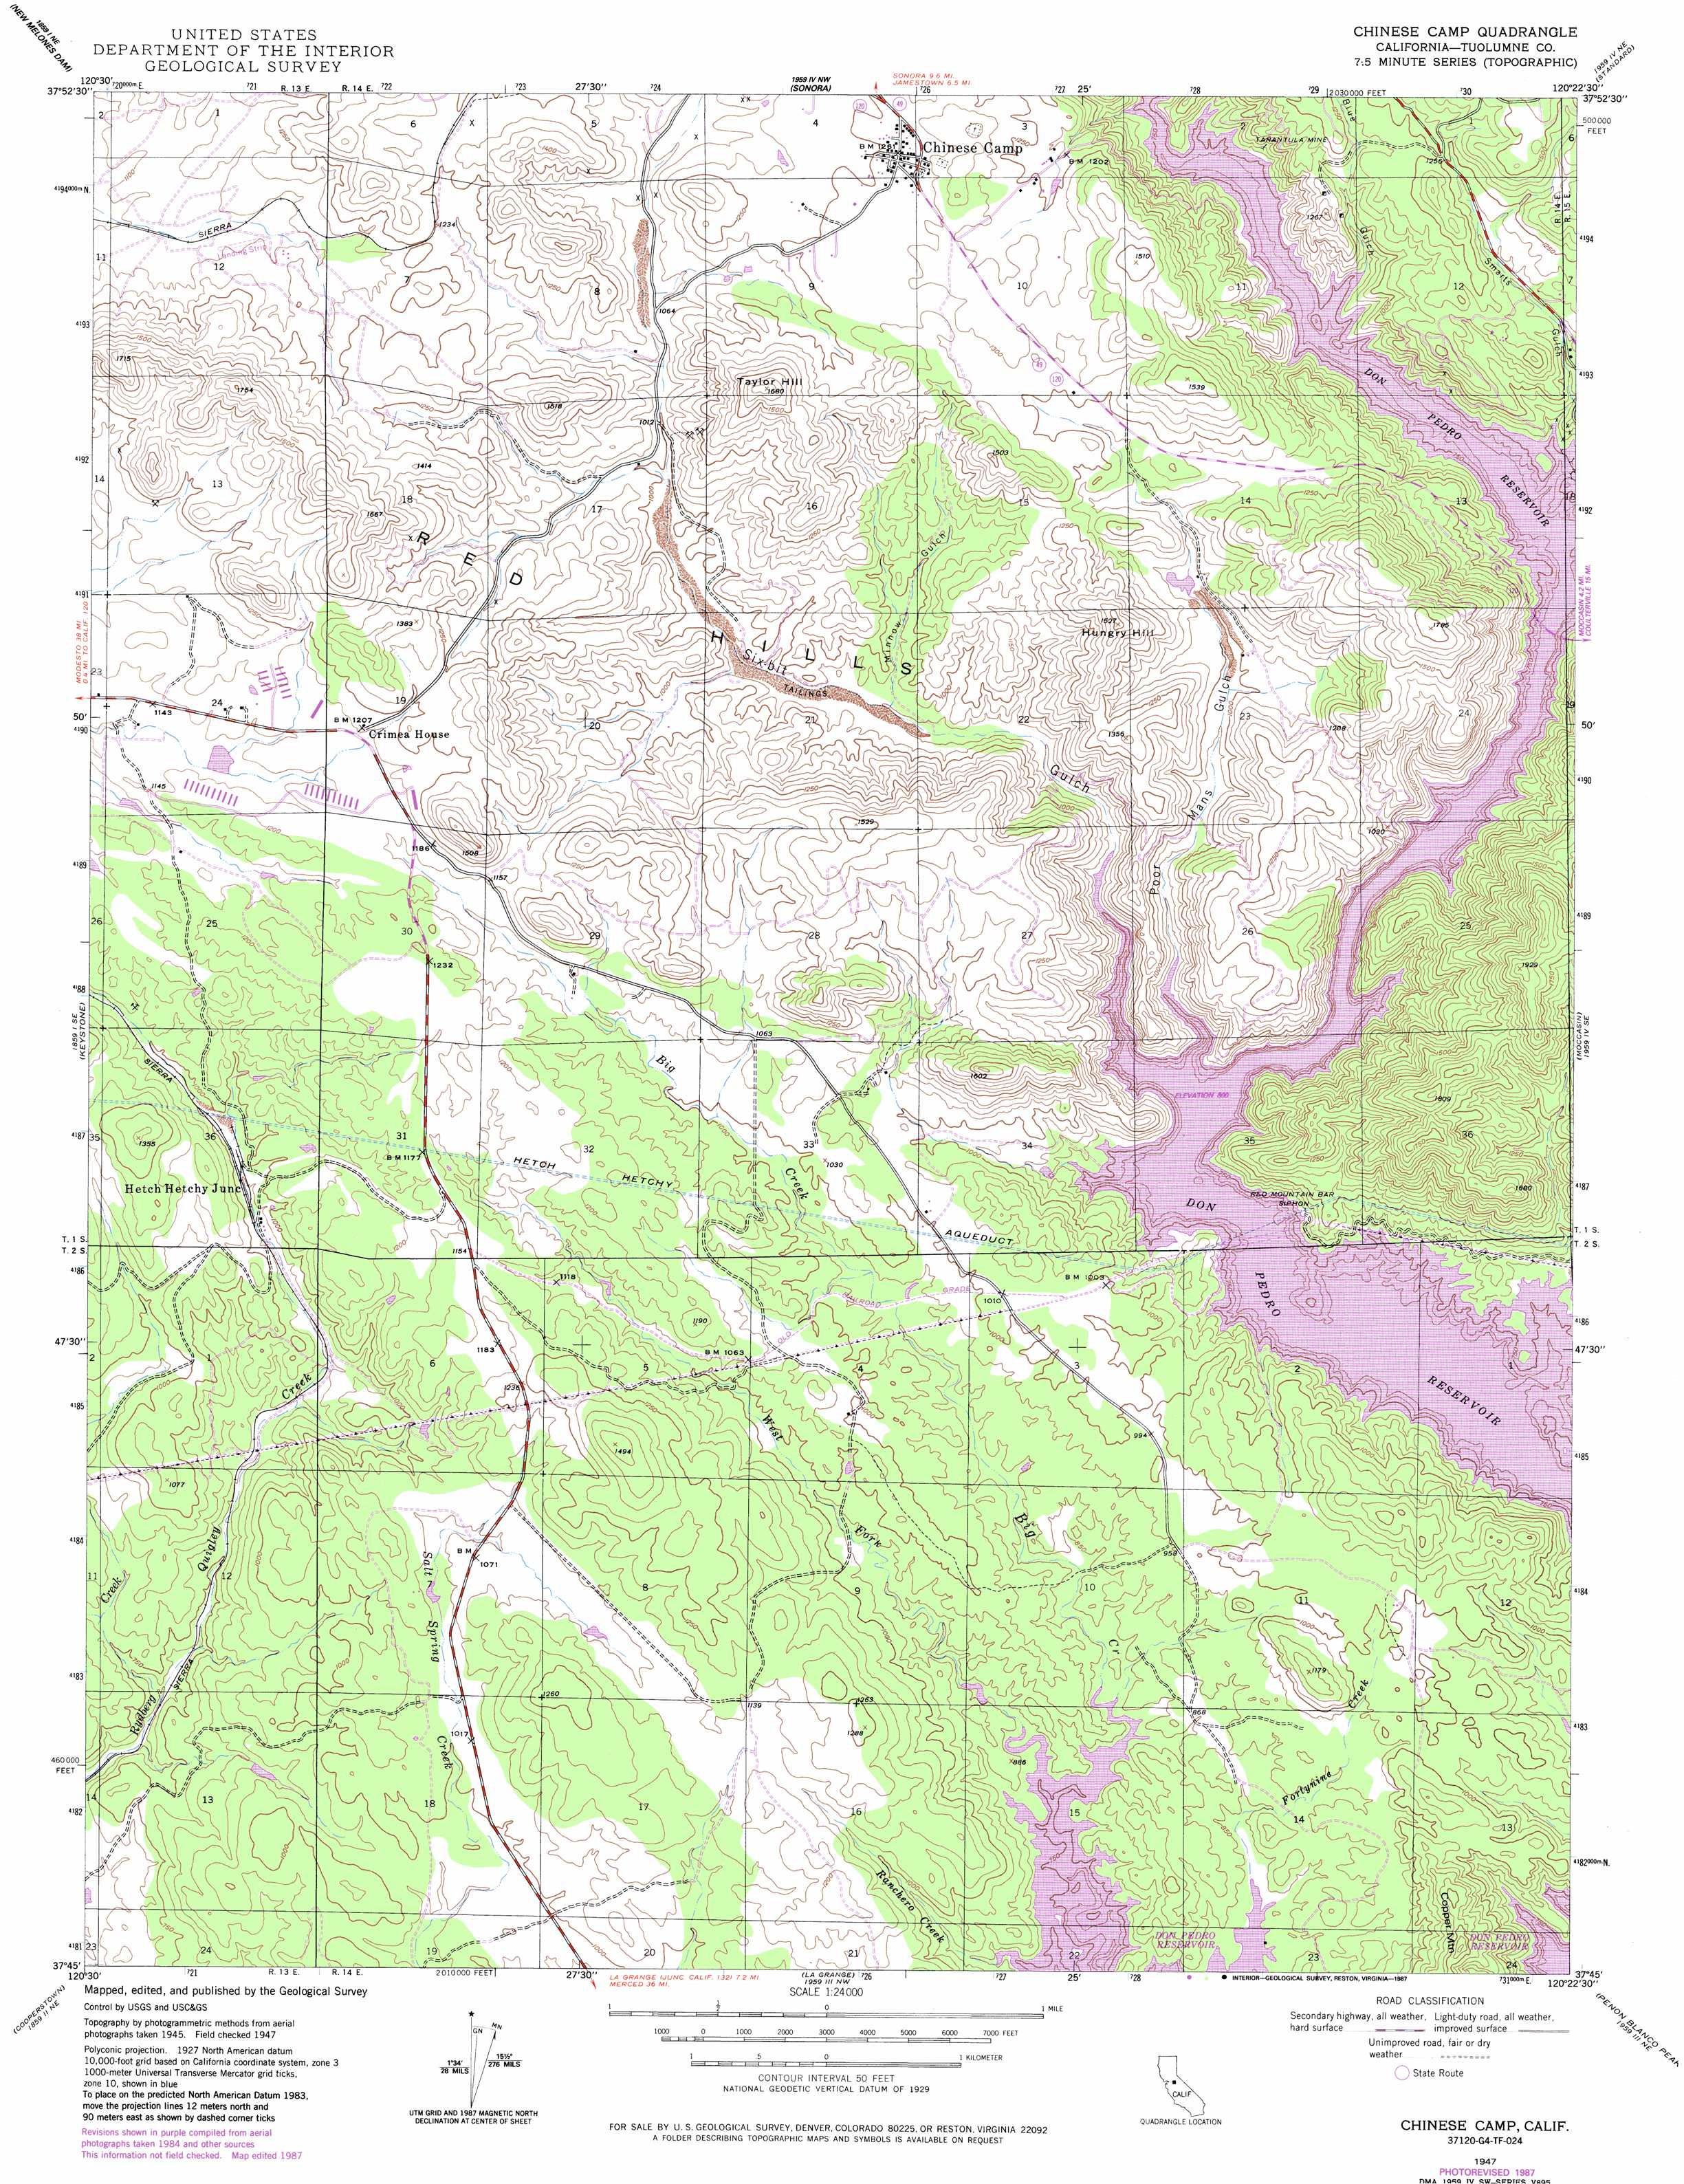 Chinese Camp topographic map CA USGS Topo Quad 37120g4